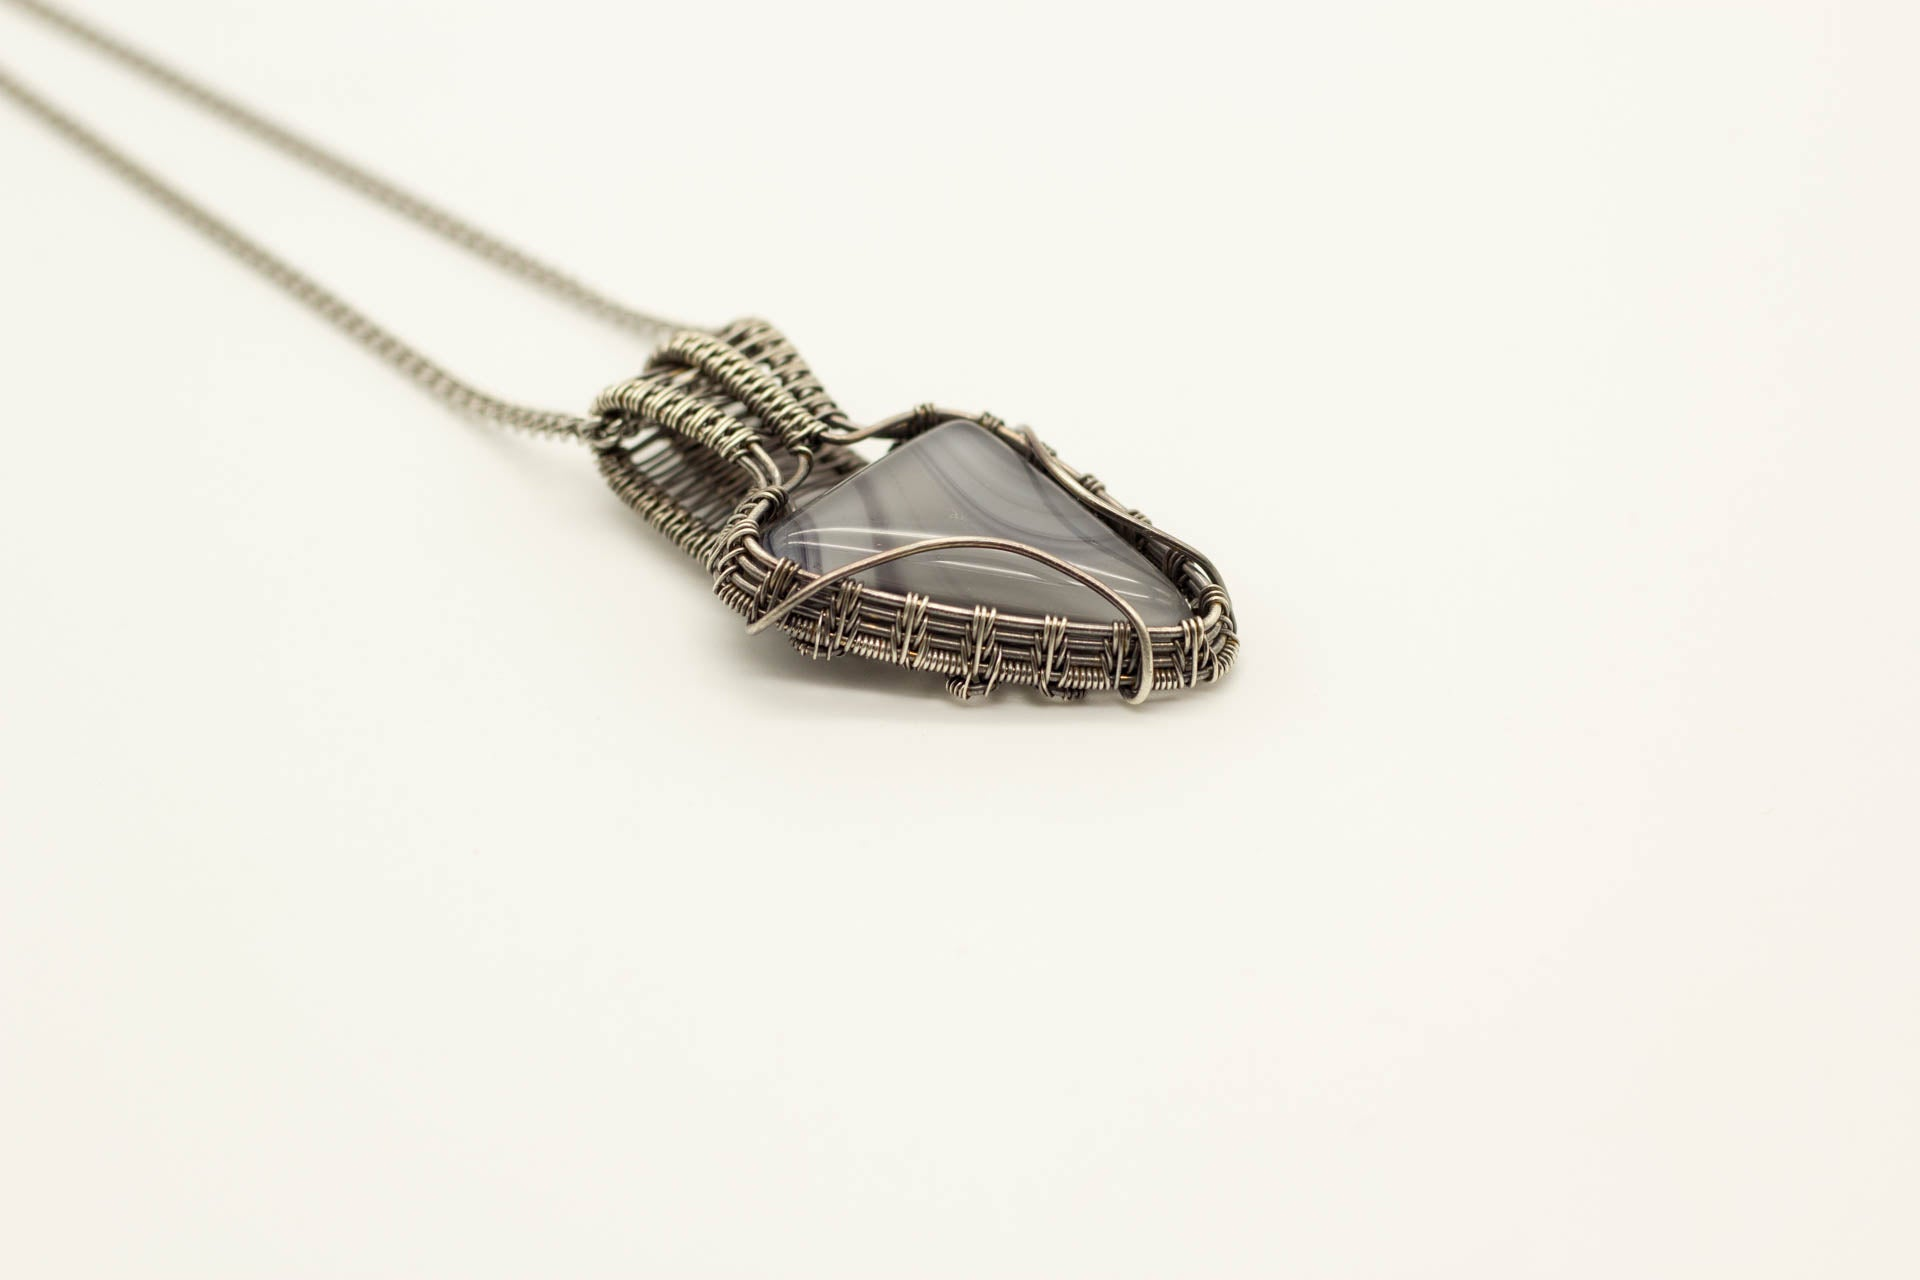 streaked-grey-fused-glass-sterling-silver-wire-wrapped-pendant-nymph-in-the-woods-jewelry